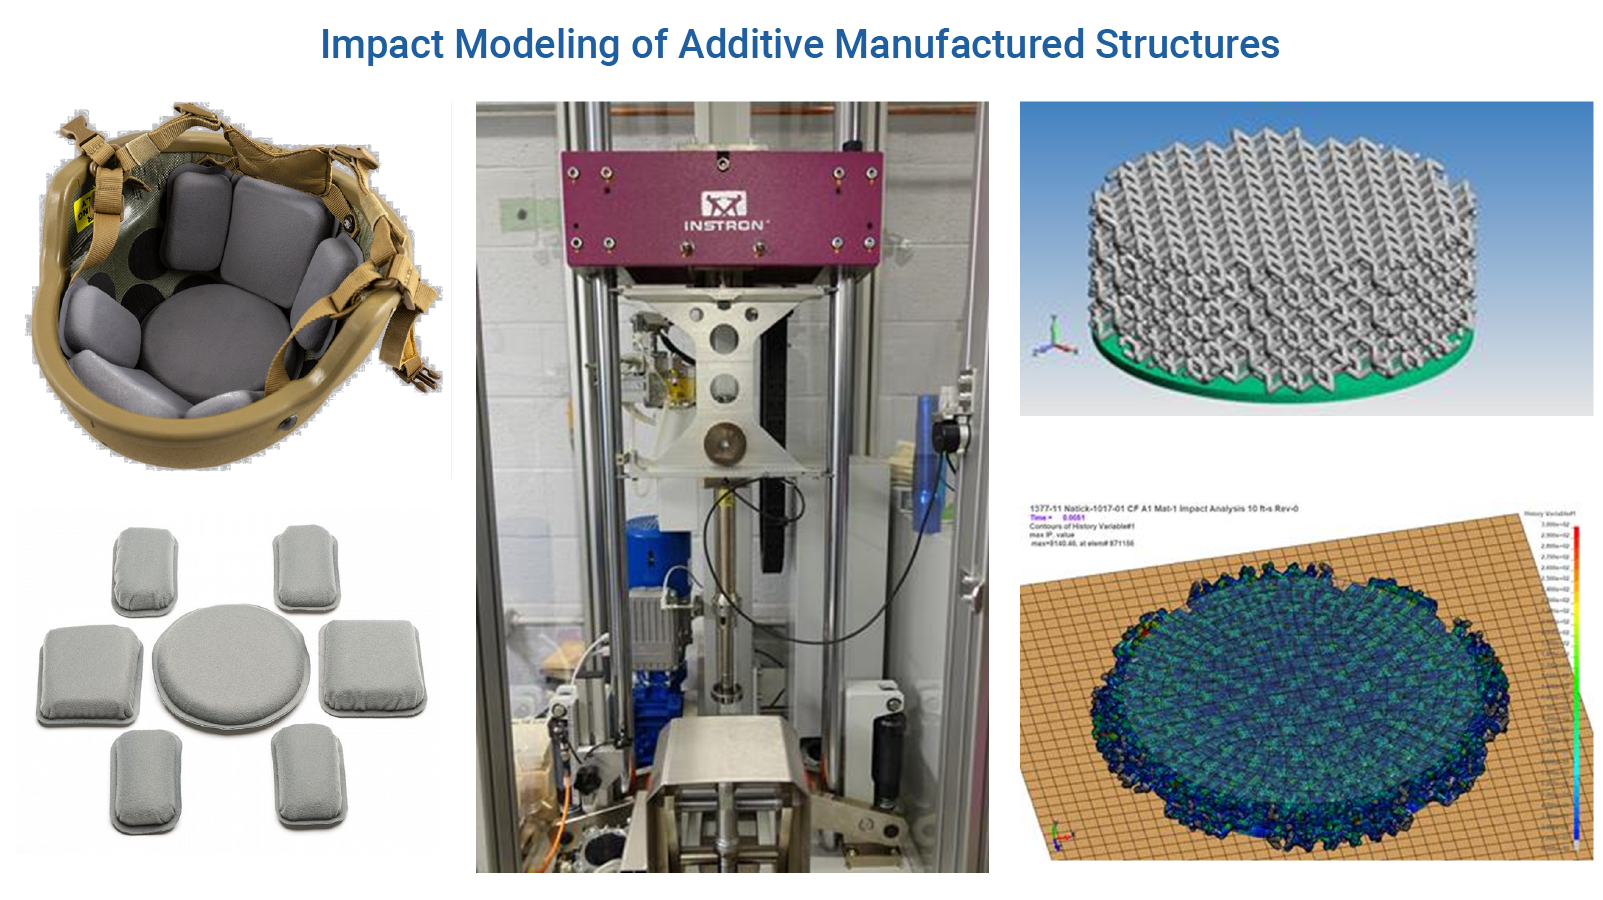 Impact Modeling of Additive Manufactured Structures for Advanced Material Properties - Predictive Engineering Consulting Services